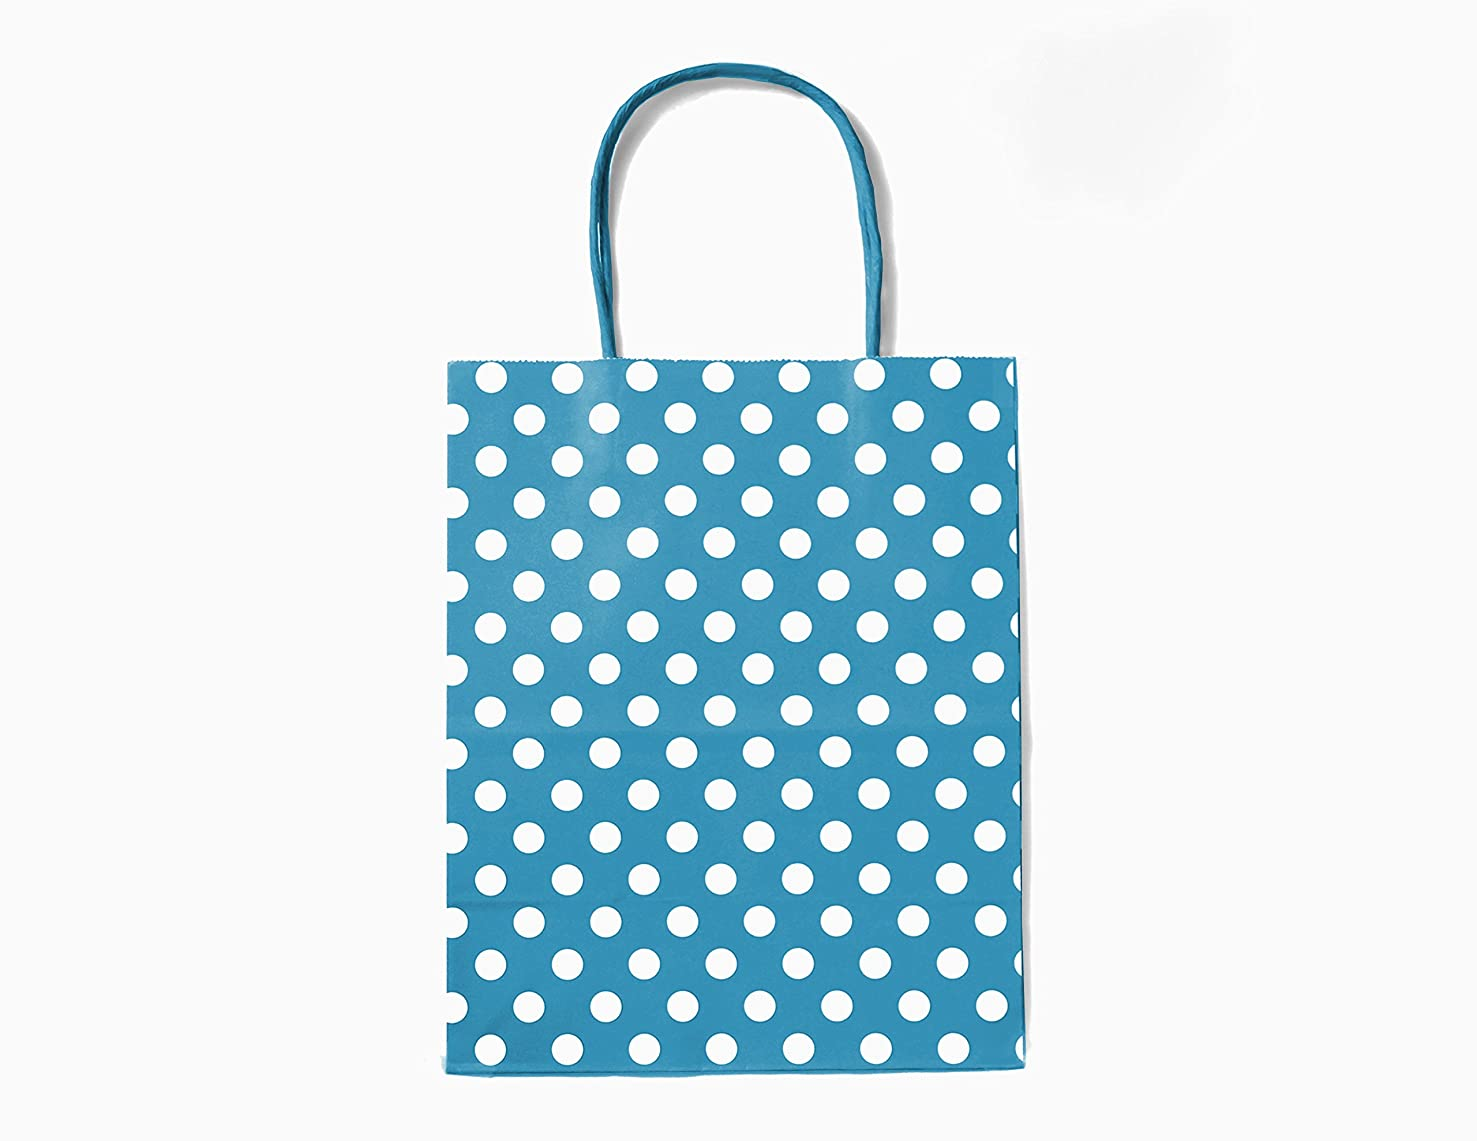 12CT MEDIUM TURQUOISE POLKA DOT BIODEGRADABLE, FOOD SAFE INK & PAPER, PREMIUM QUALITY PAPER (STURDY & THICKER), KRAFT BAG WITH COLORED STURDY HANDLE (Medium, P.Turquoise)